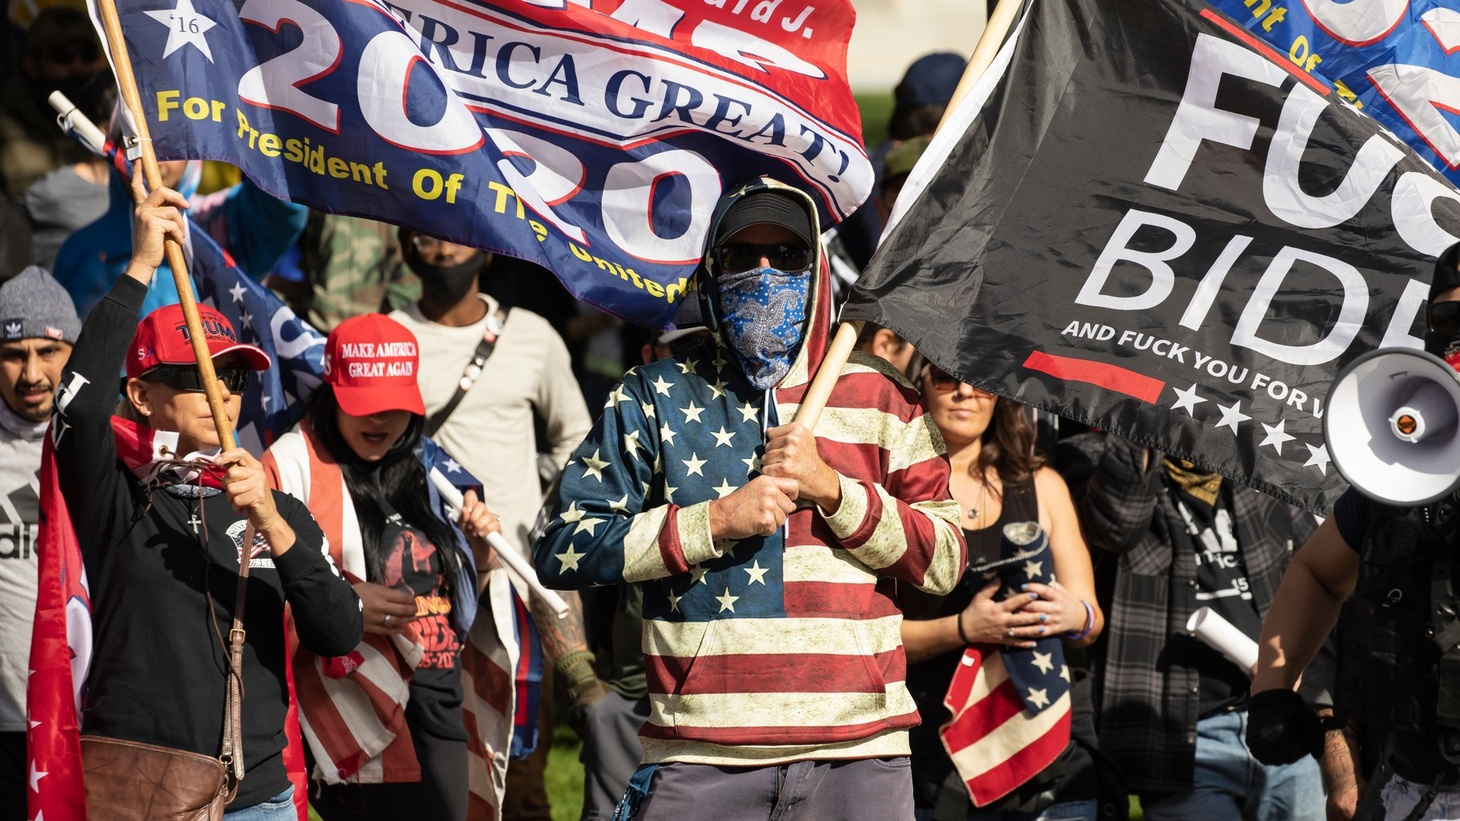 Trump supporters gathered in downtown Los Angeles to protest the certification of President-elect Joe Biden, January 6, 2021.